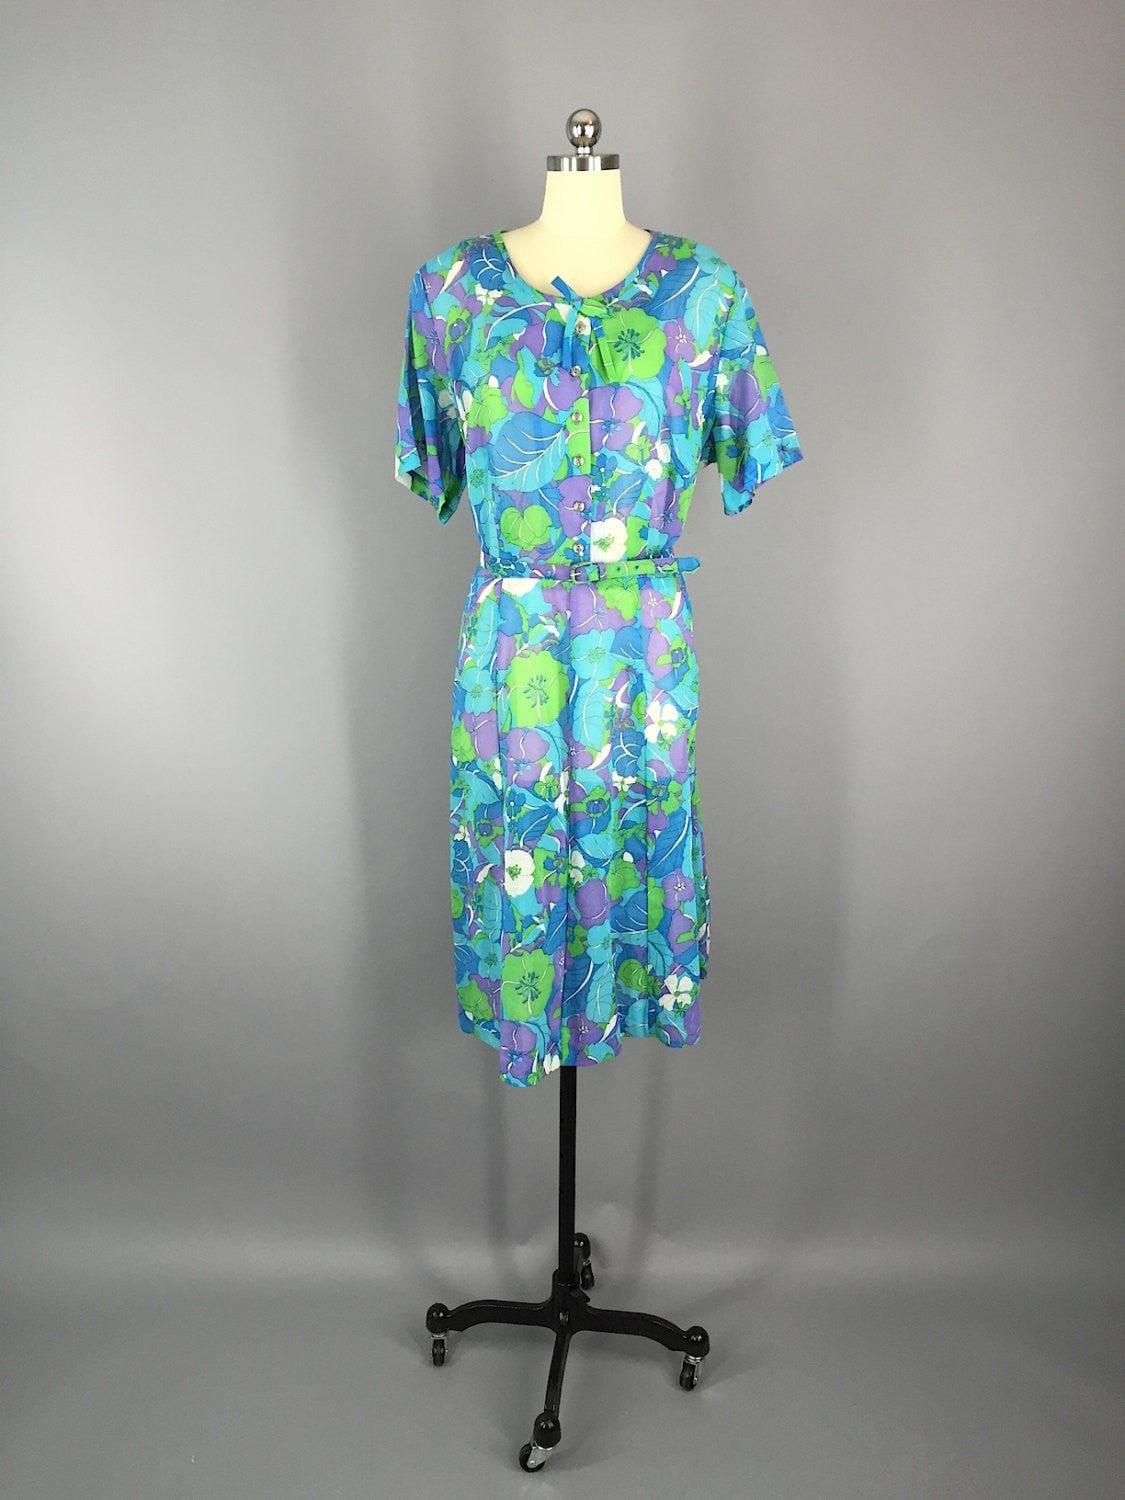 1960s Vintage Blue Mod Floral Print Dress and Jacket Set Dress ThisBlueBird - Sale